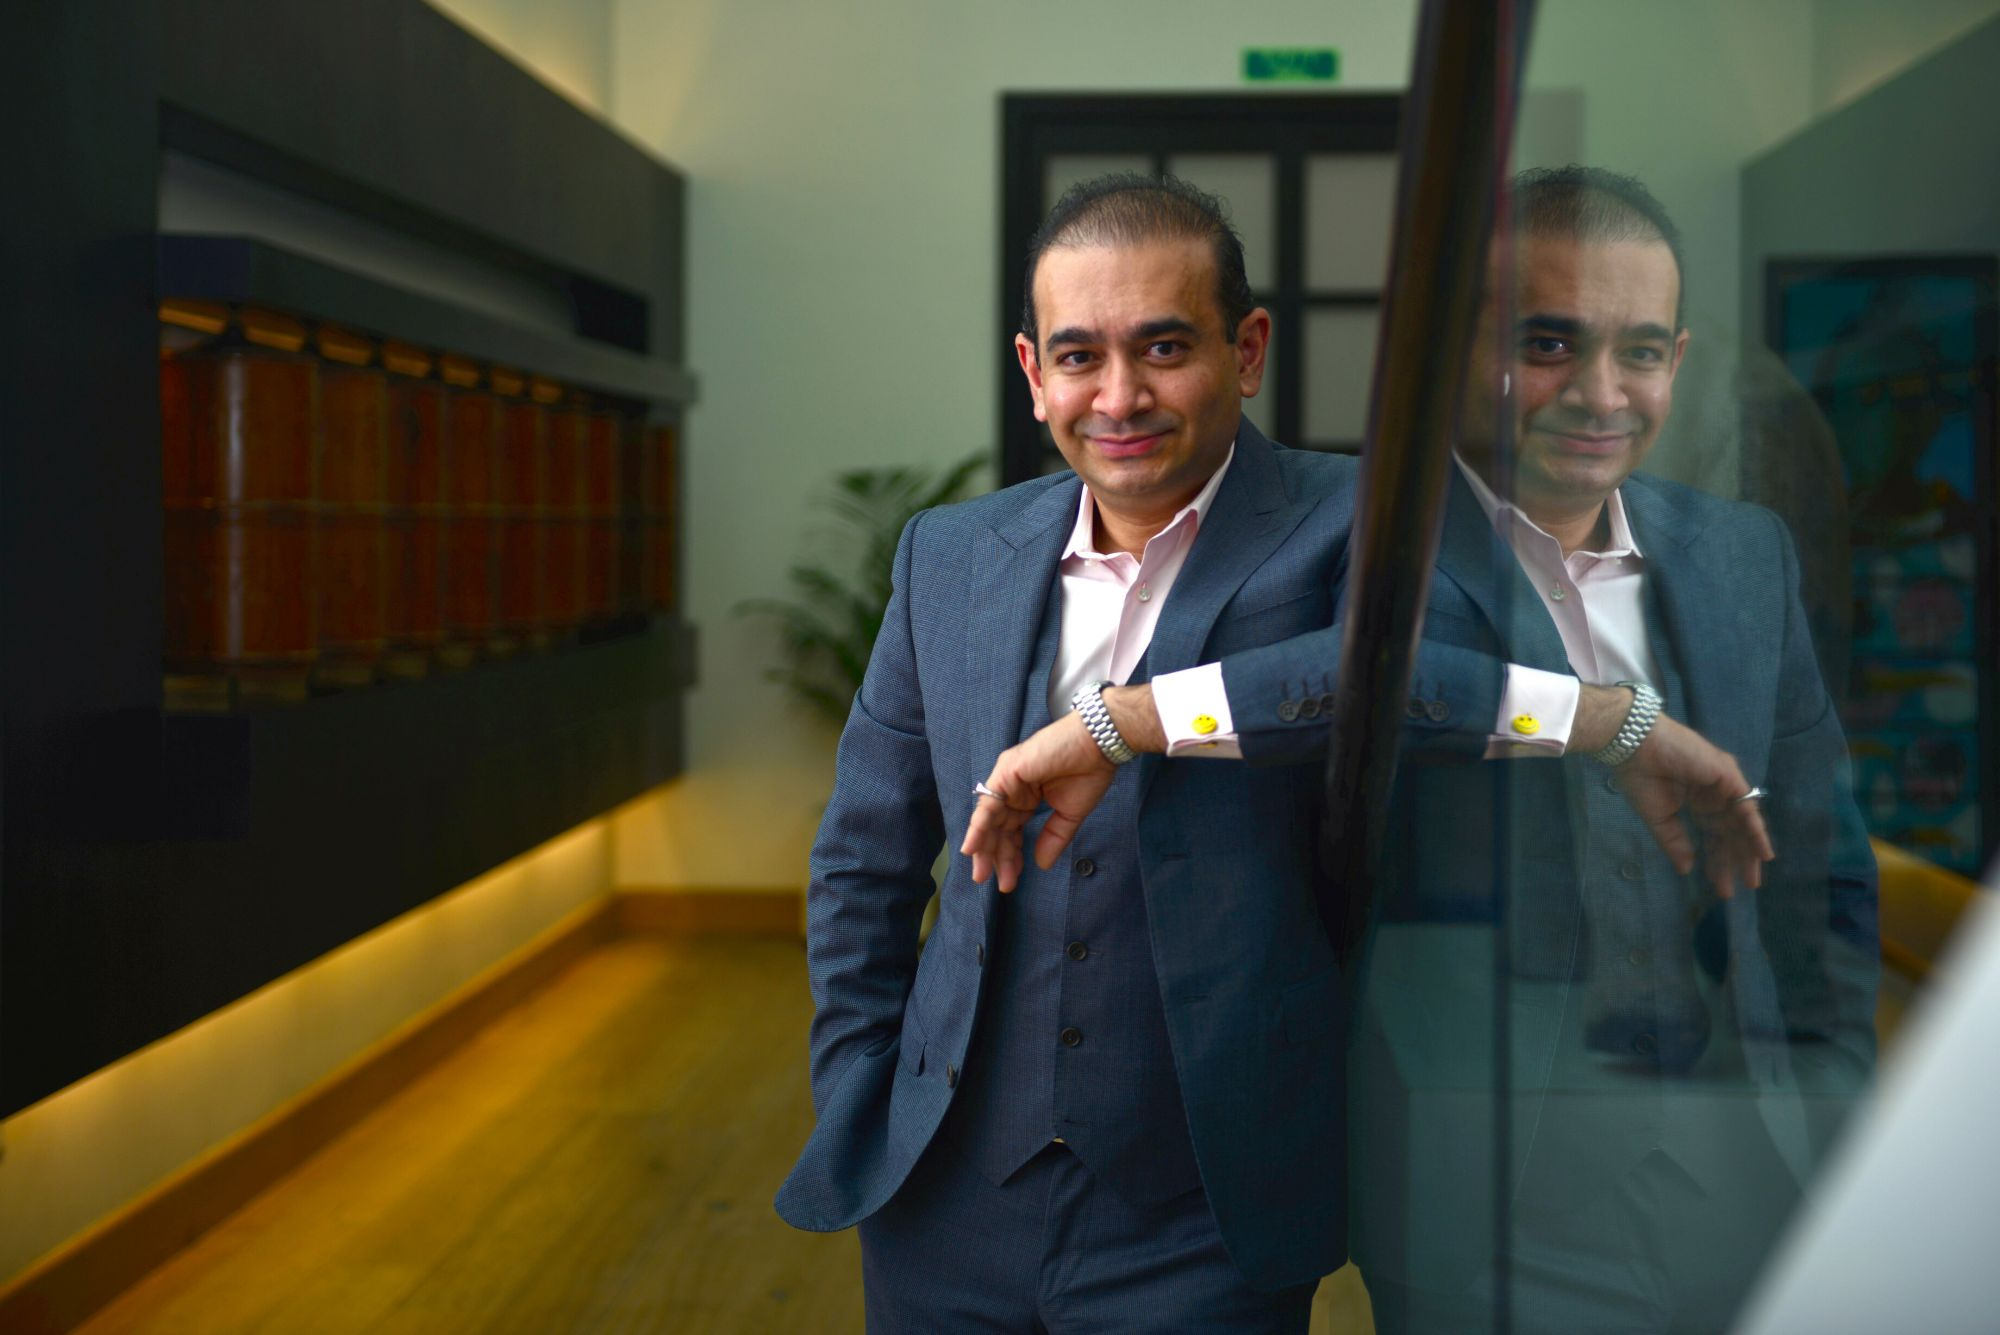 MUMBAI, INDIA - AUGUST 9: Luxury diamond jewellery designer and founder and creative director of the Nirav Modi chain of diamond jewellery retail stores Nirav Modi at his office in Lower Parel, on August 9, 2016 in Mumbai, India. (Photo by Aniruddha Chowdhury/Mint via Getty Images)